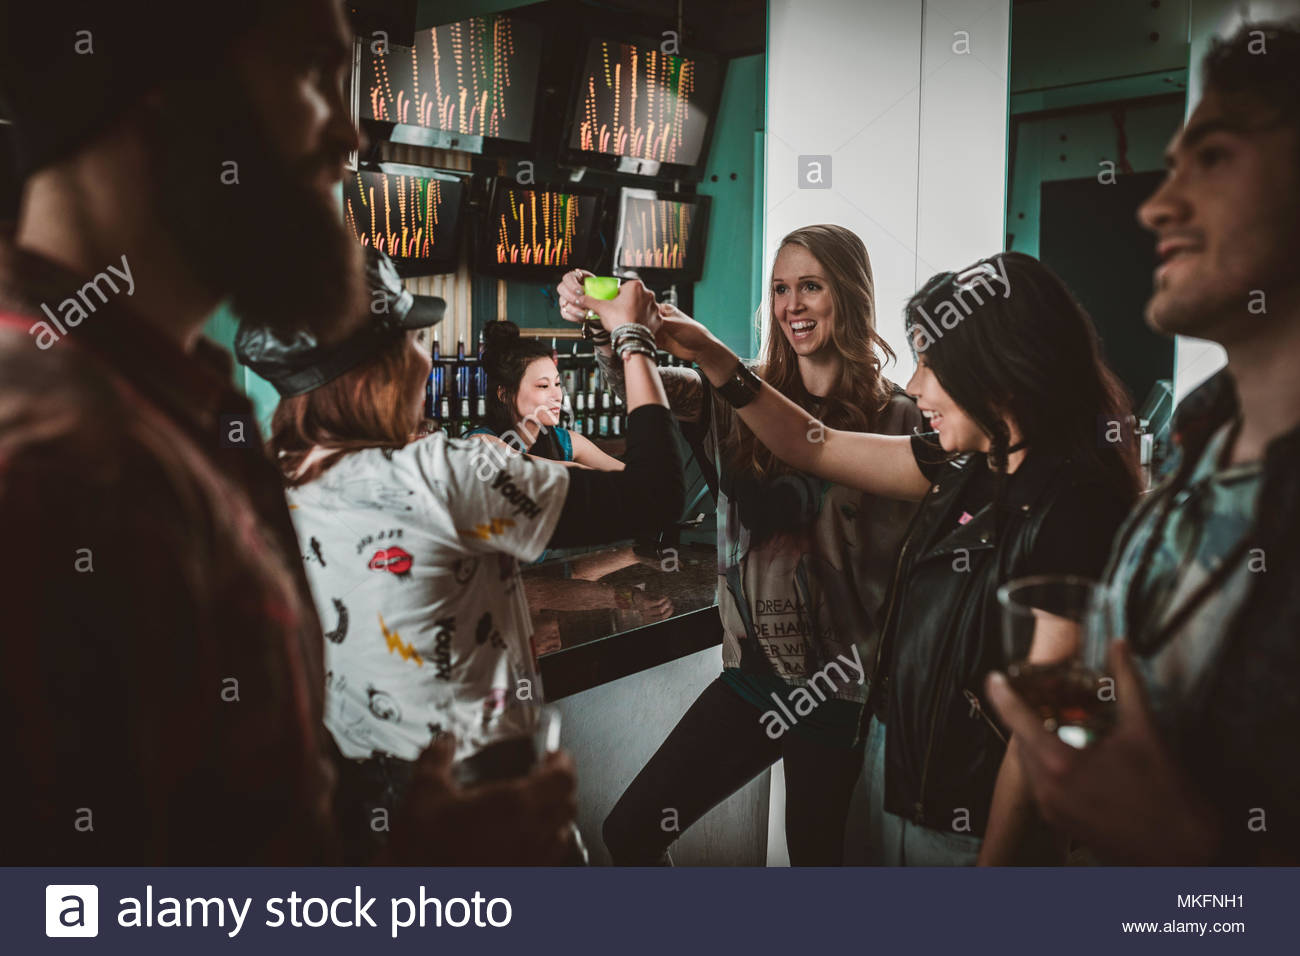 Millennial friends taking shots, partying in nightclub bar - Stock Image